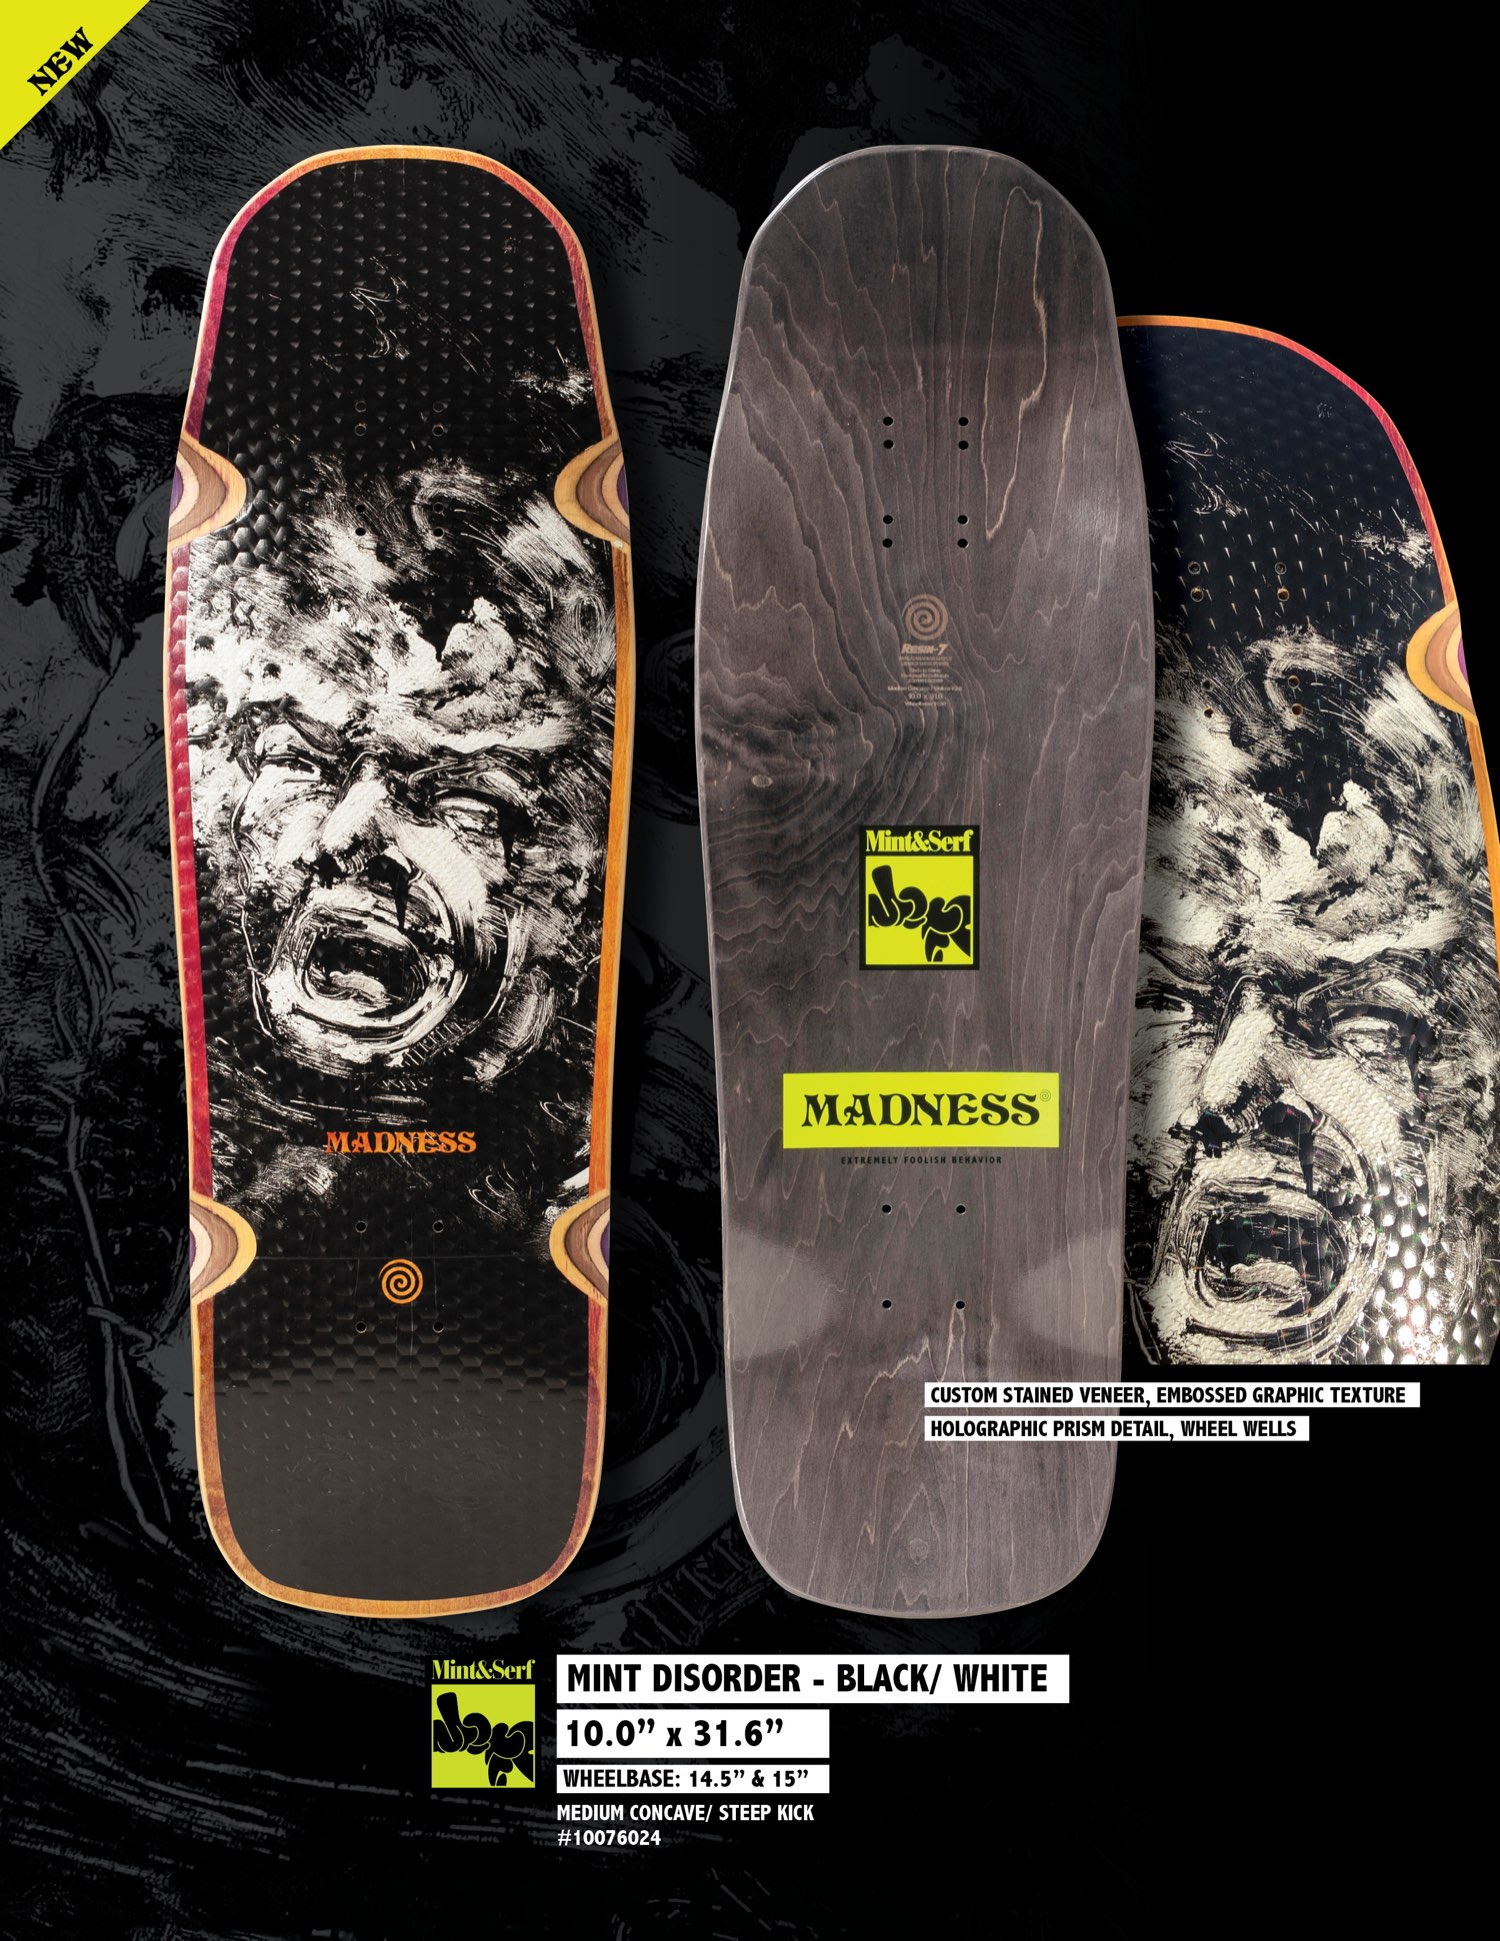 Madness_Skateboards_Summer19_Products6-06.jpg